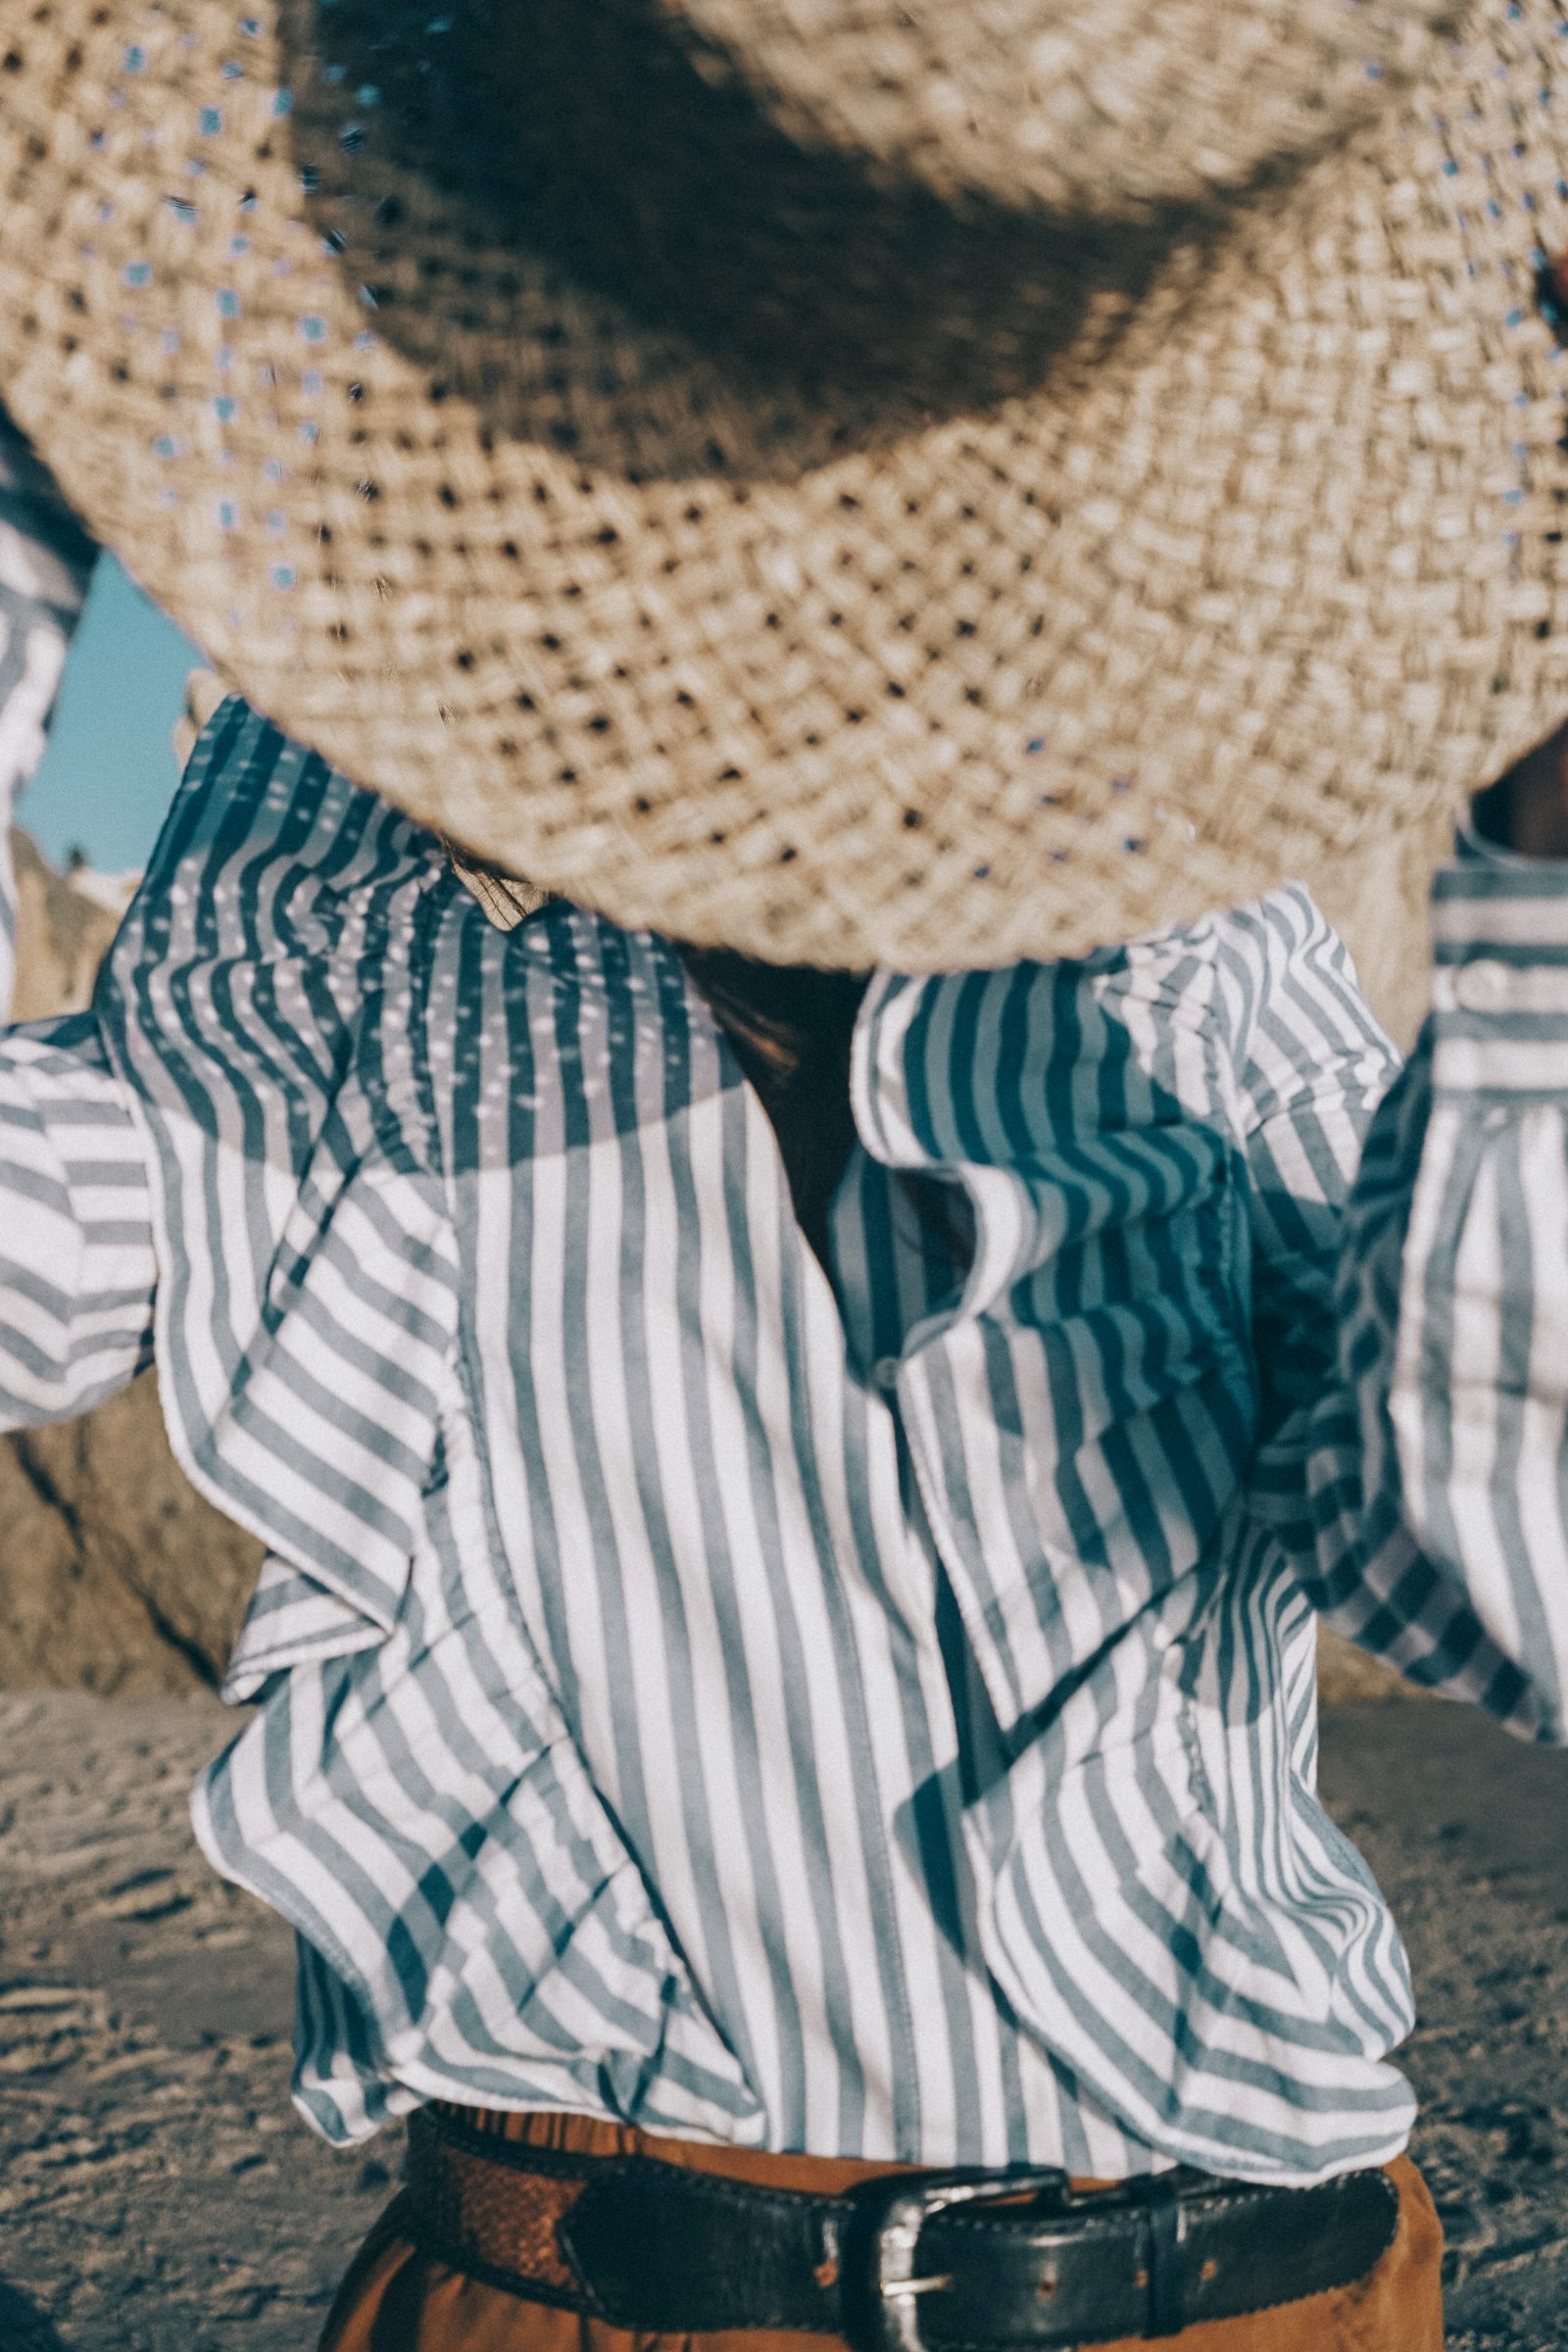 stripped_blouse-camel_trousers-lack_of_color_hat-wanderlust_jewels-matador_beach-malibu-golden_goose_sneakers-street_style-collage_vintage-138